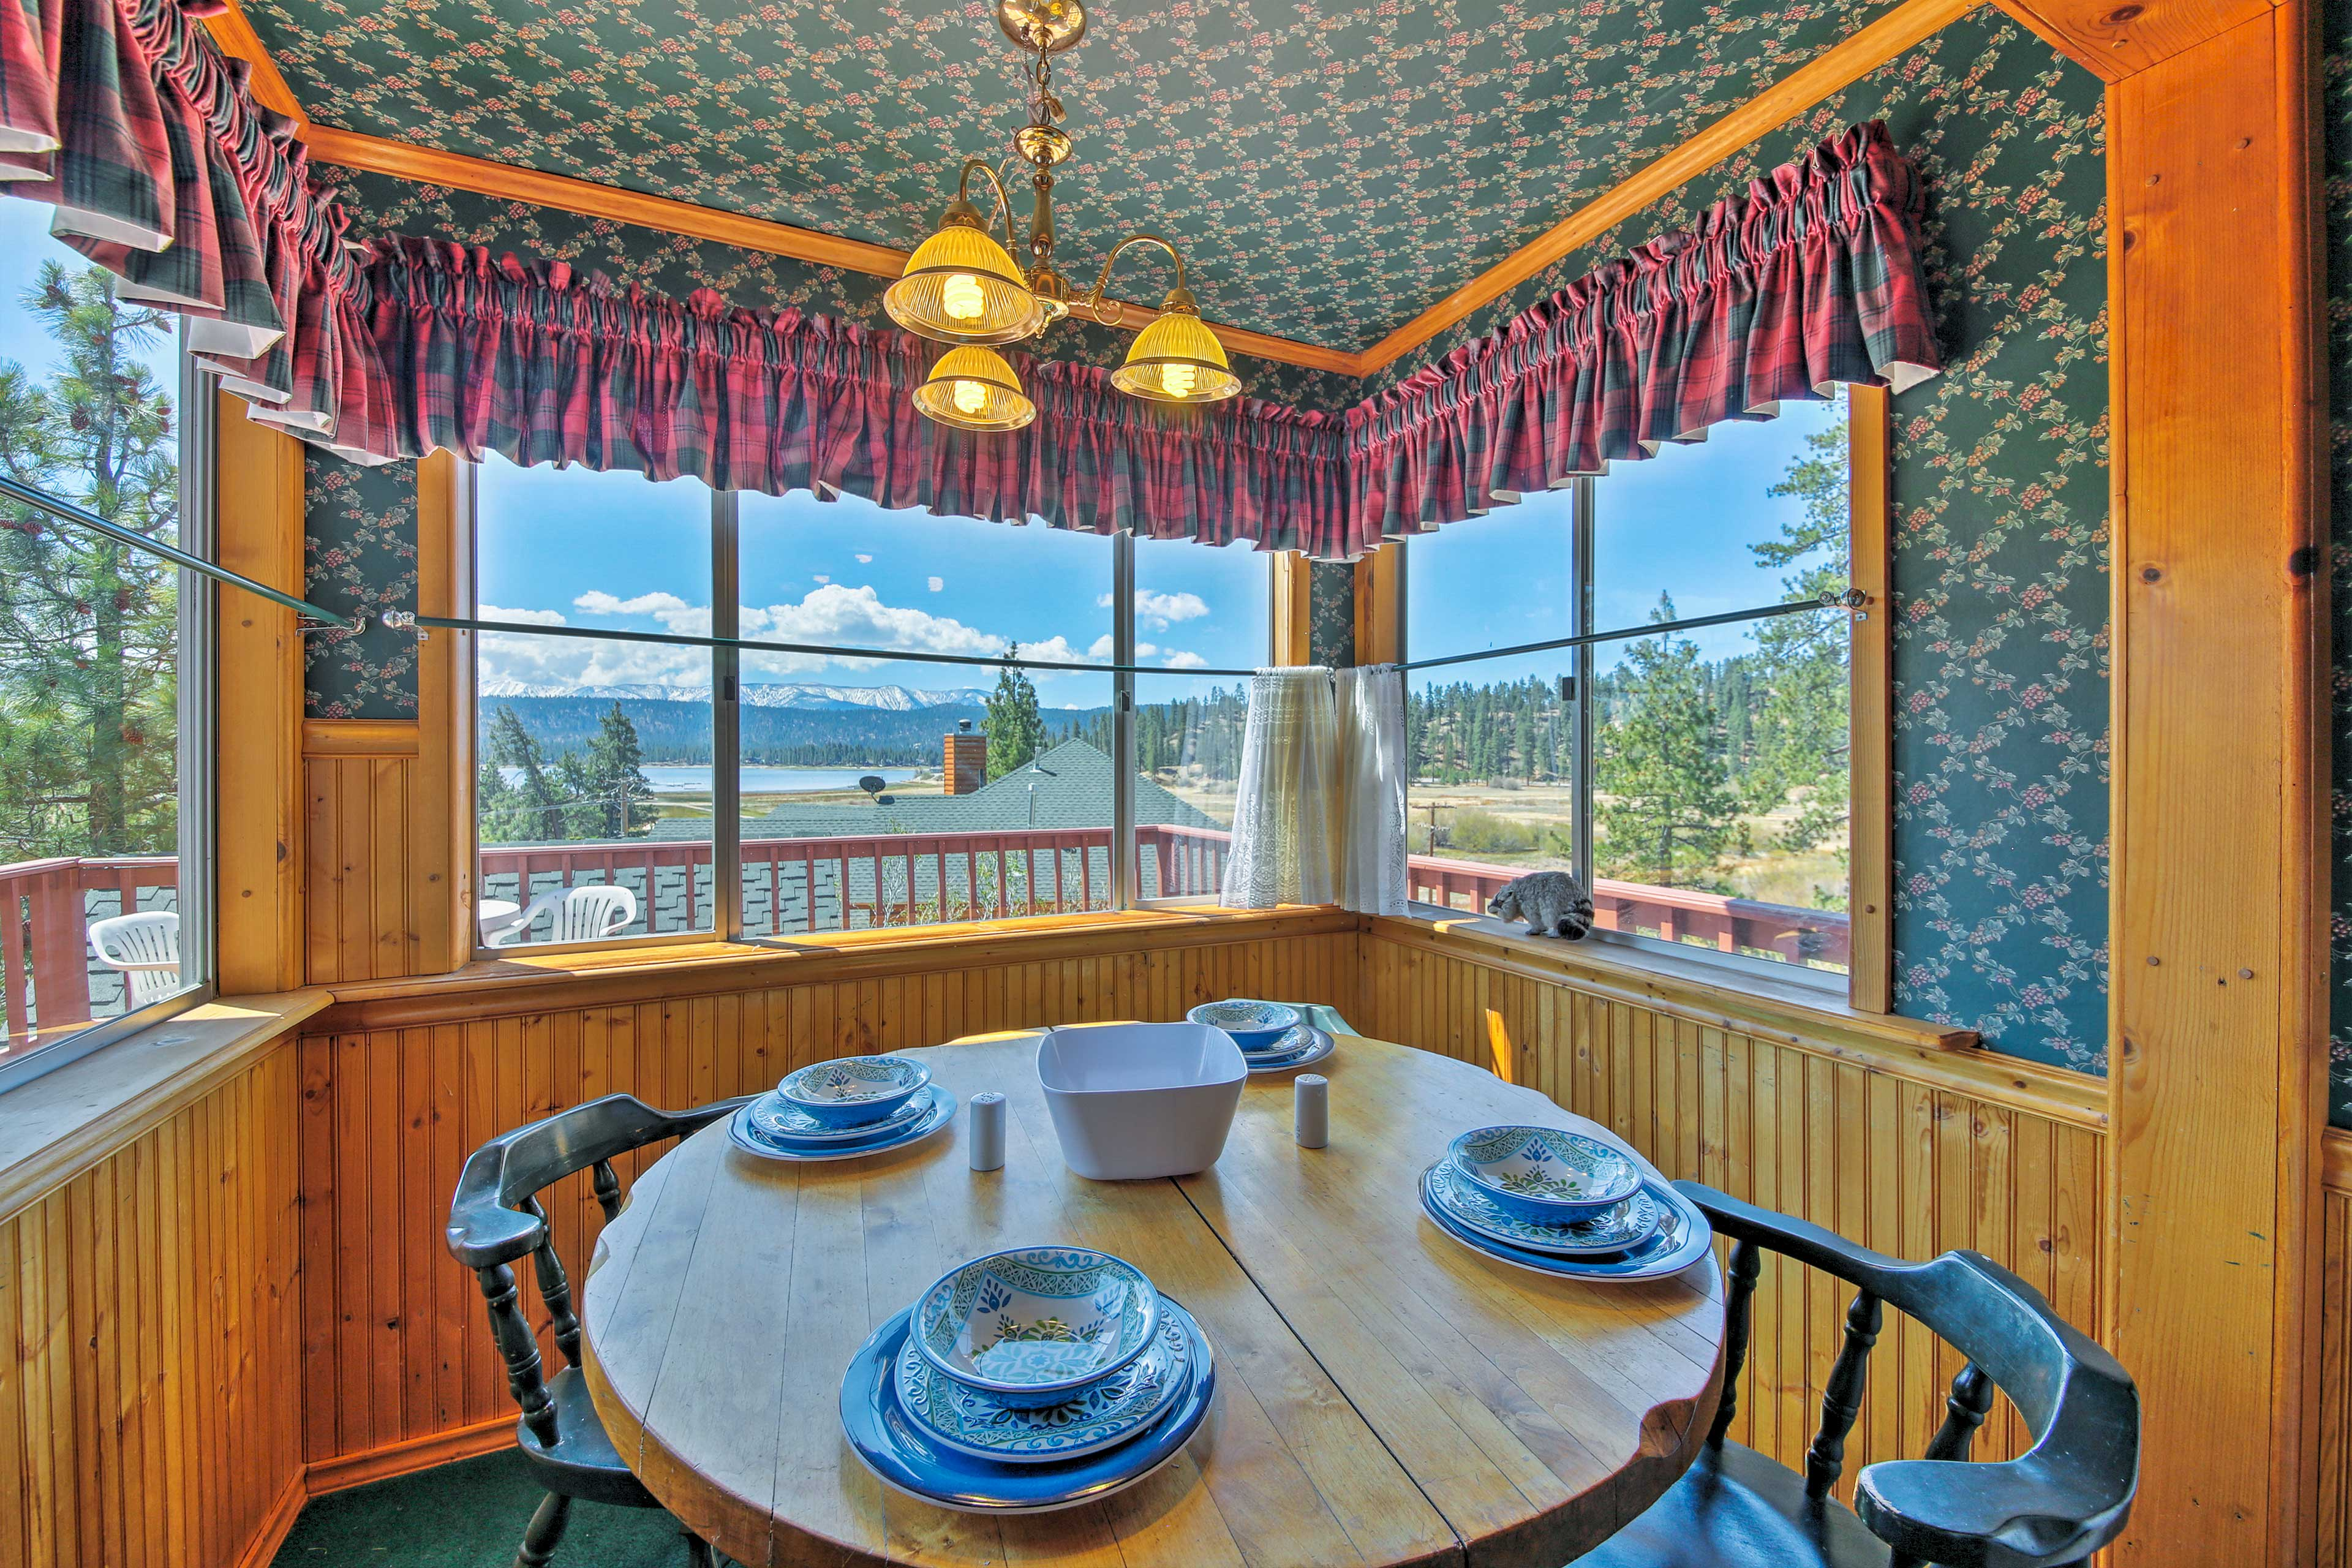 Marvel at lake views as you dine with your travel companion.